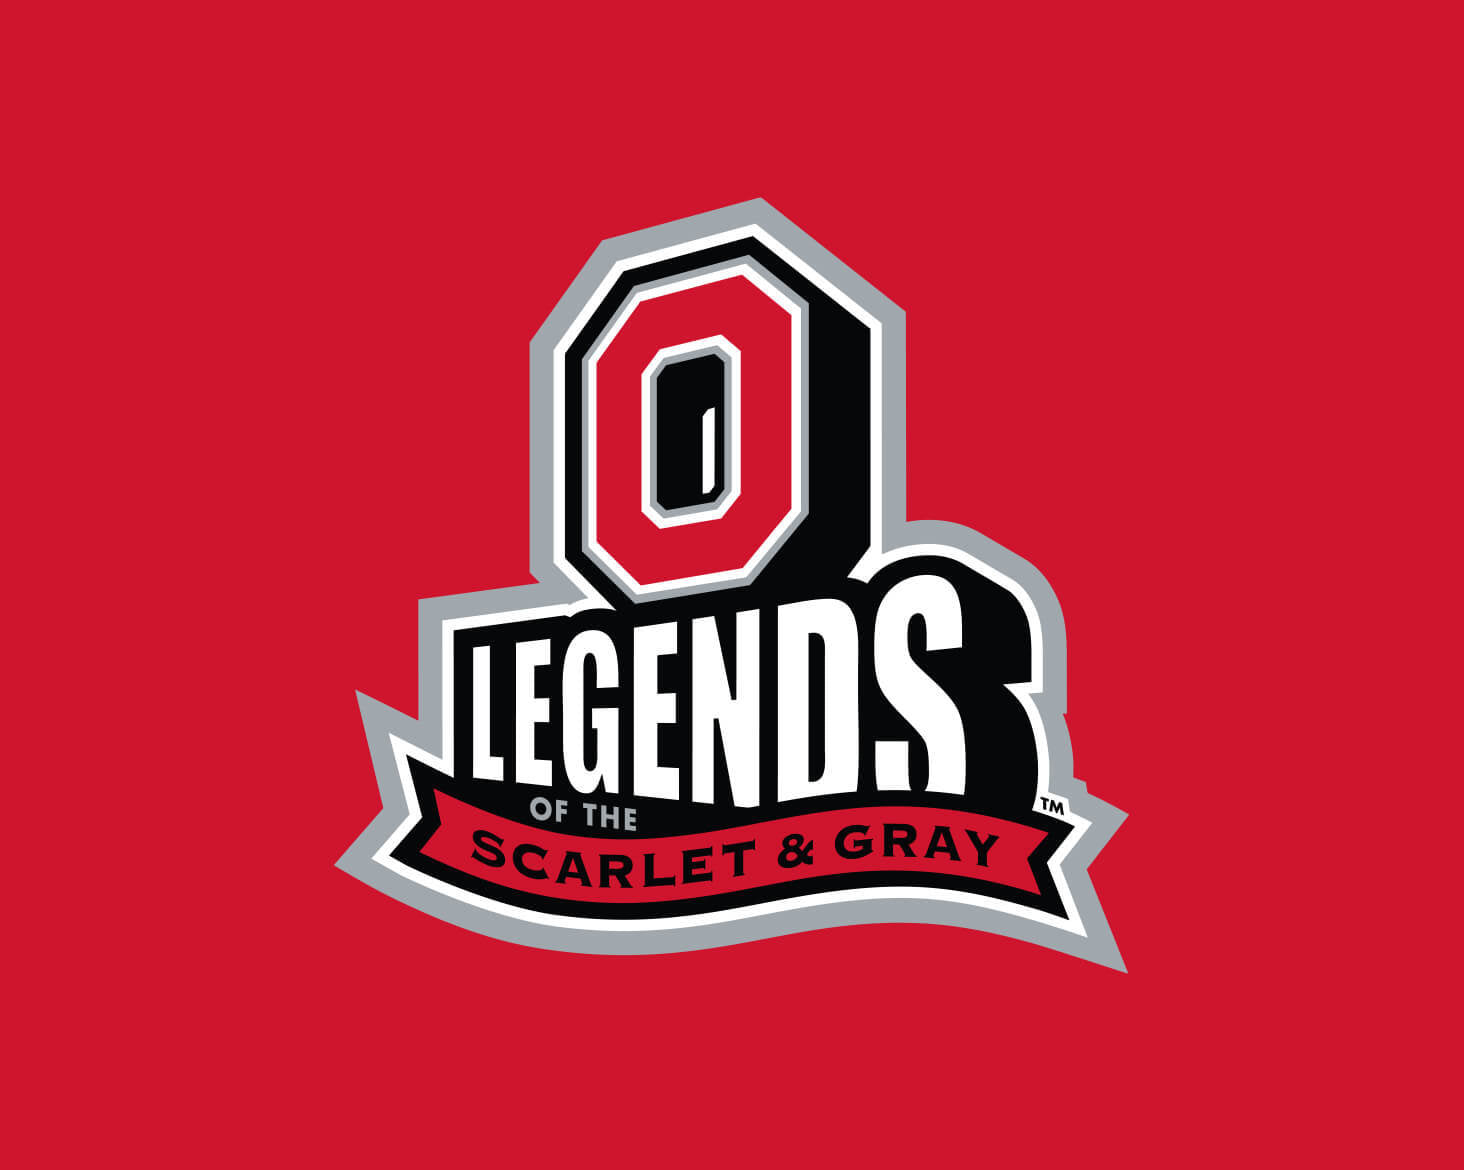 Legends Of The Scarlet & Gray